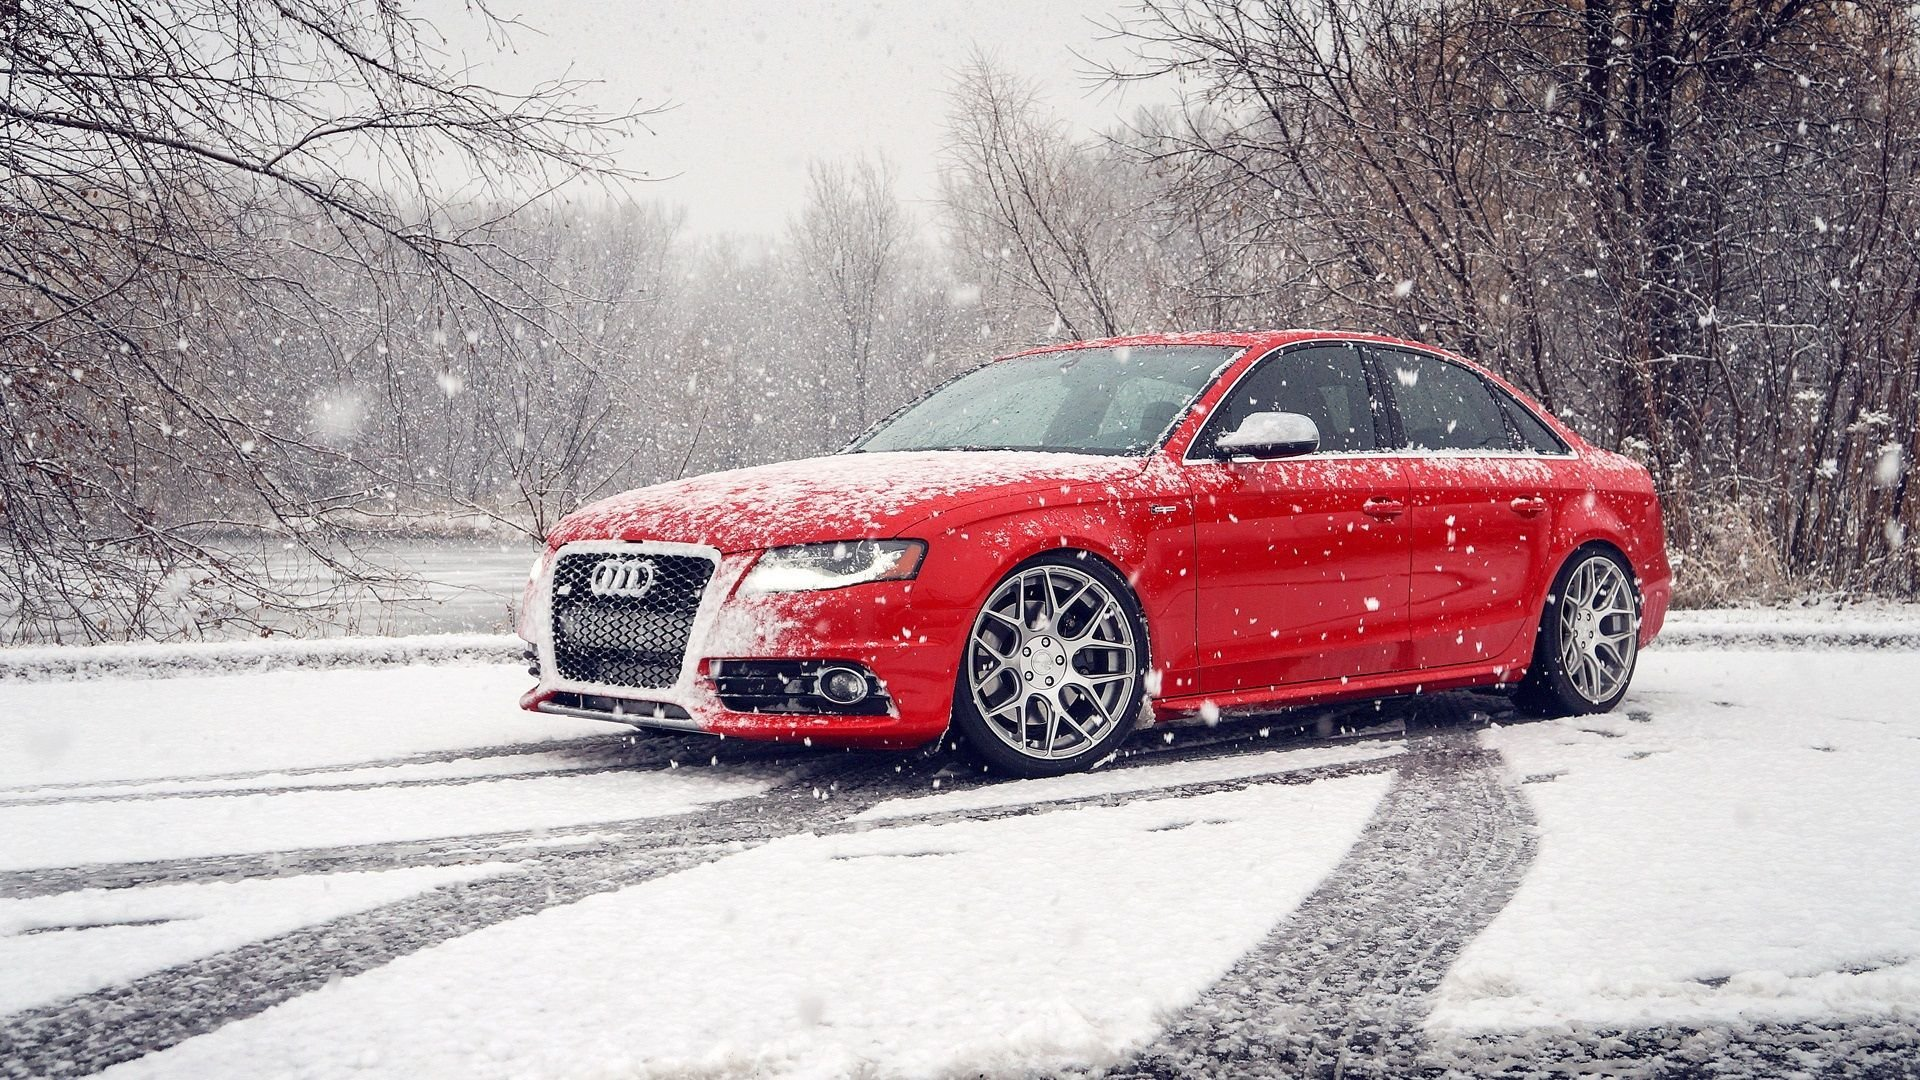 Latest Red Audi S4 Snow Winter Hd Wallpaper Download Car On Free Download